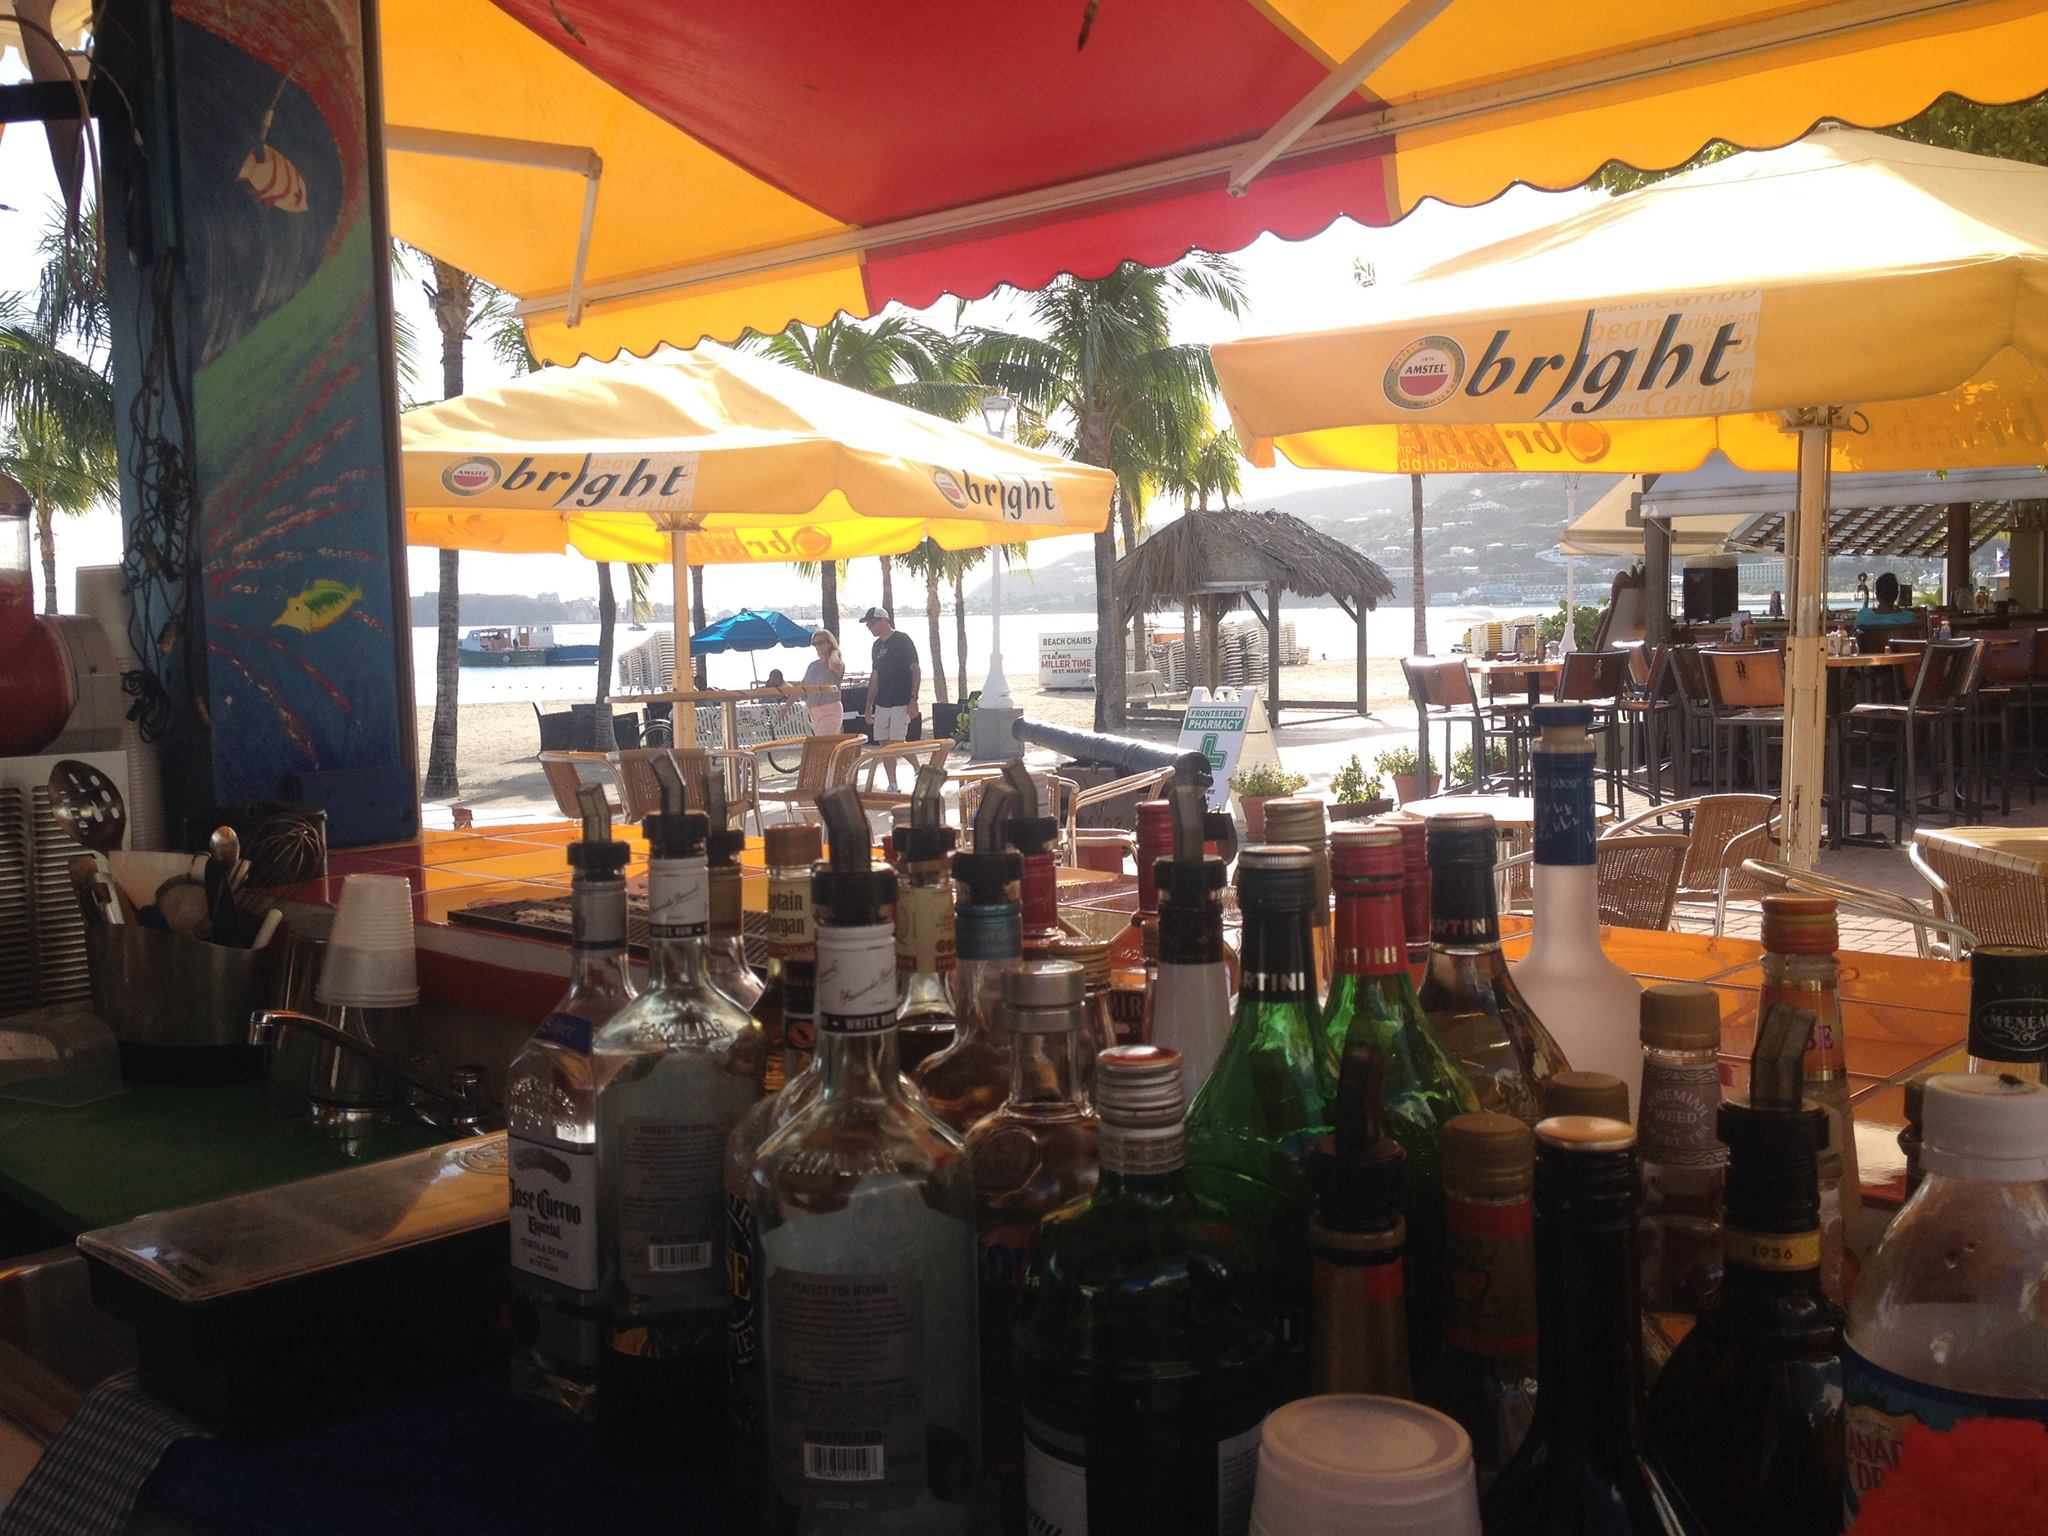 st rose beach bar 3.jpg